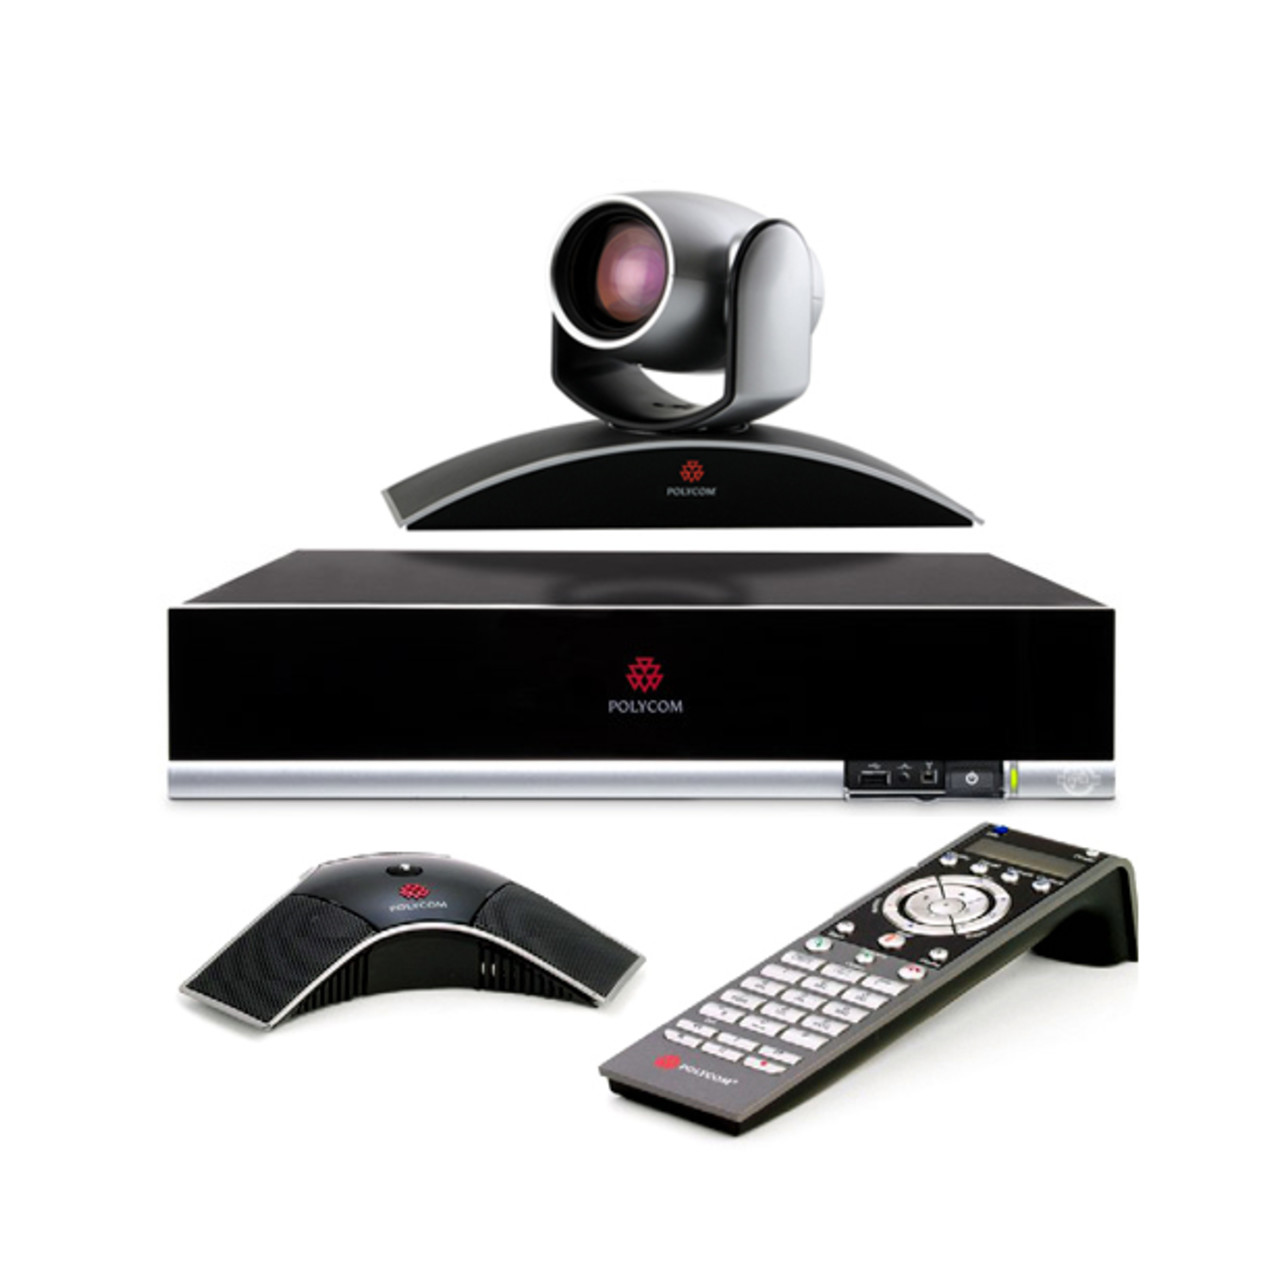 Polycom Hdx 9006 Hd Video Conferencing System 2201